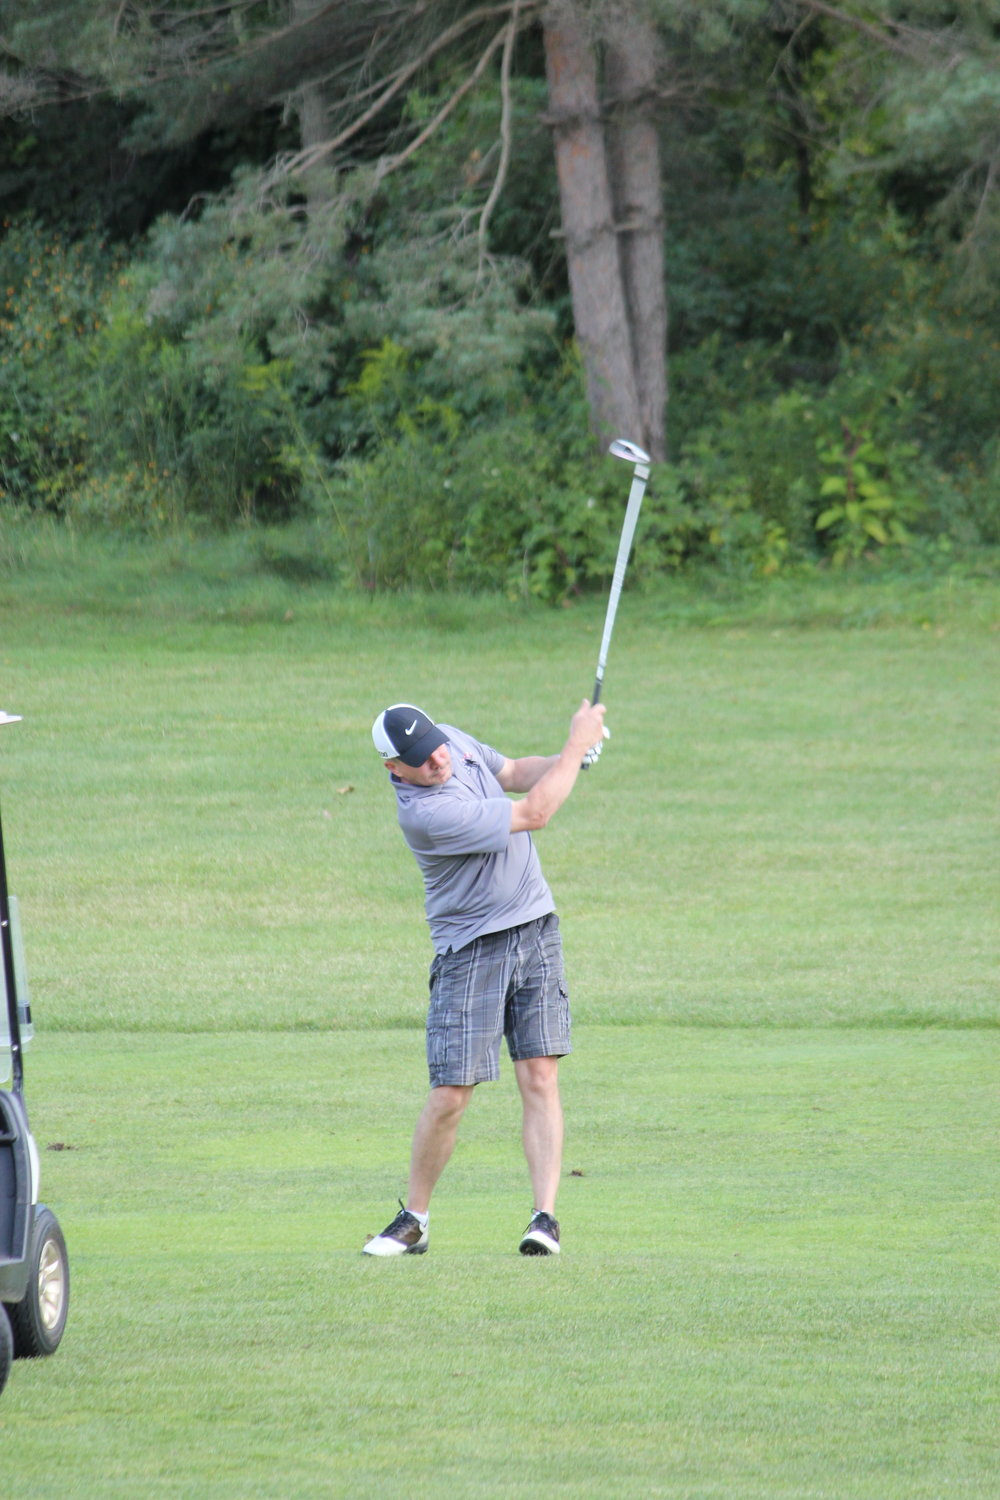 IMG_2253 Rick golfing FFO Golf Outing 2015 copy.JPG